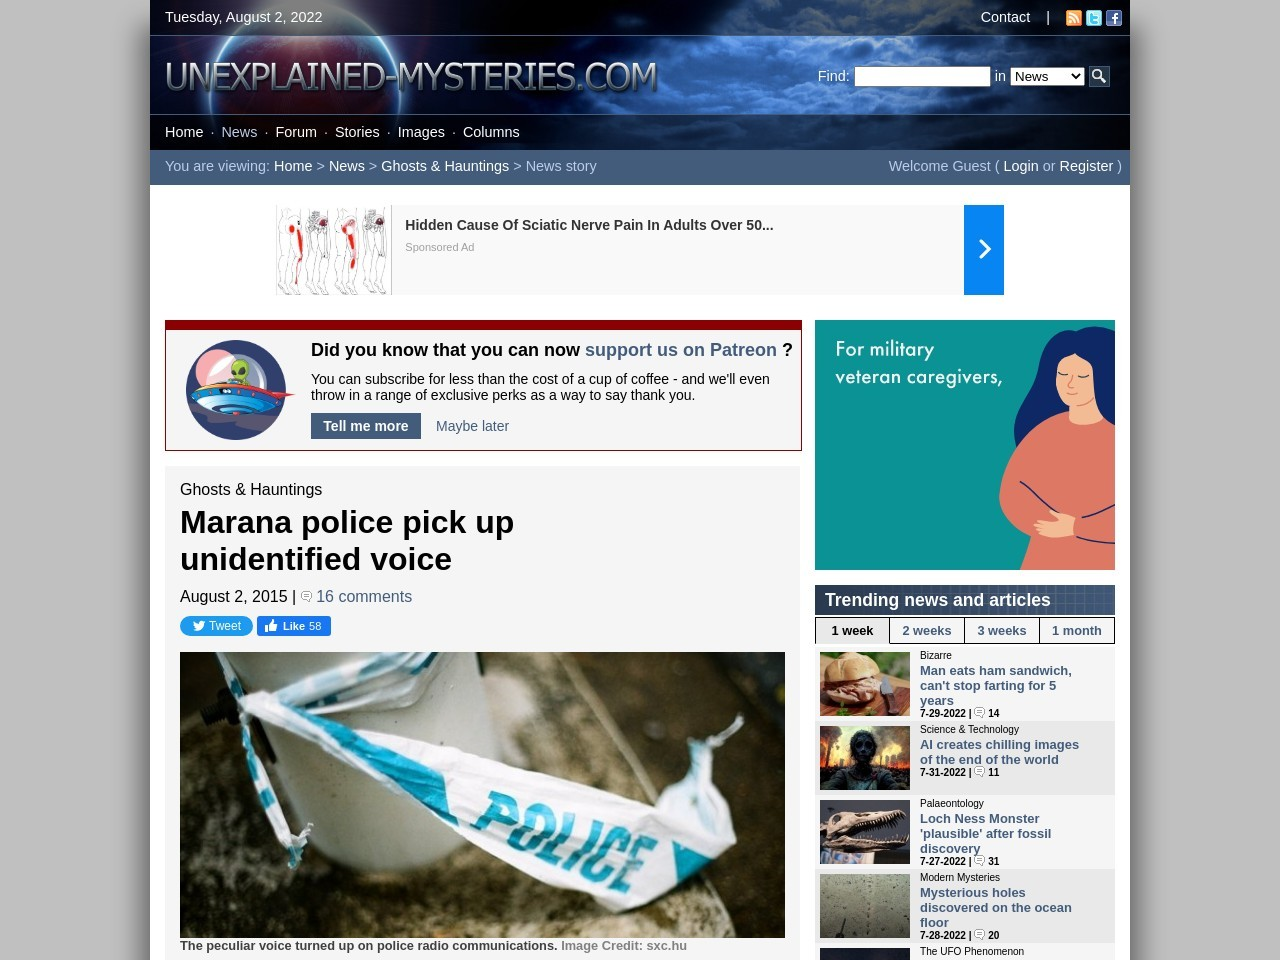 Marana police pick up unidentified voice